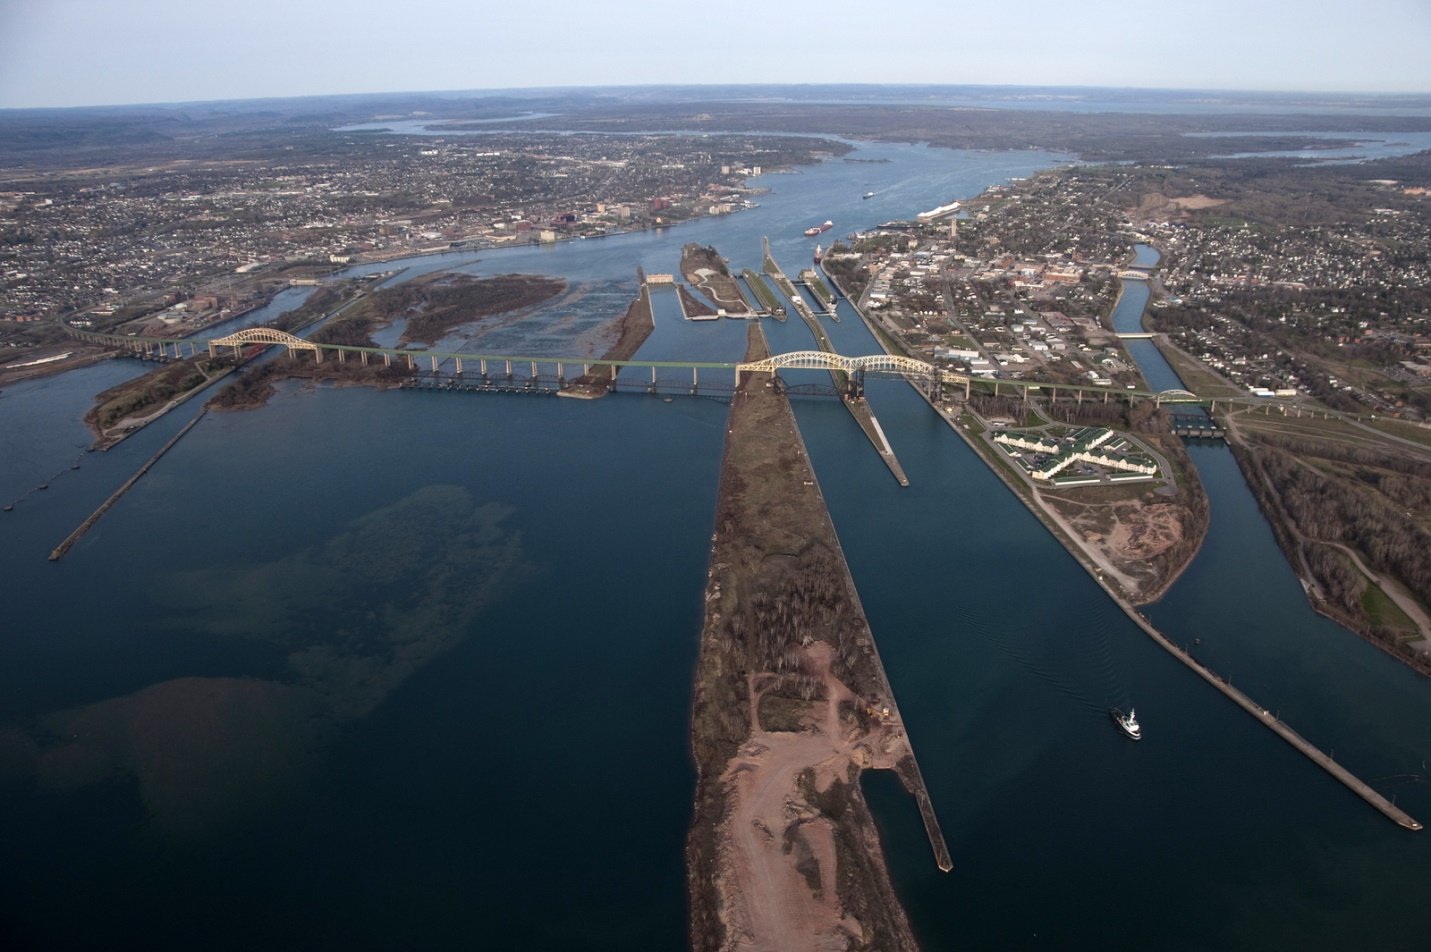 An aerial view showing the St. Marys River control structures. Credit: U.S. Army Corps of Engineers.